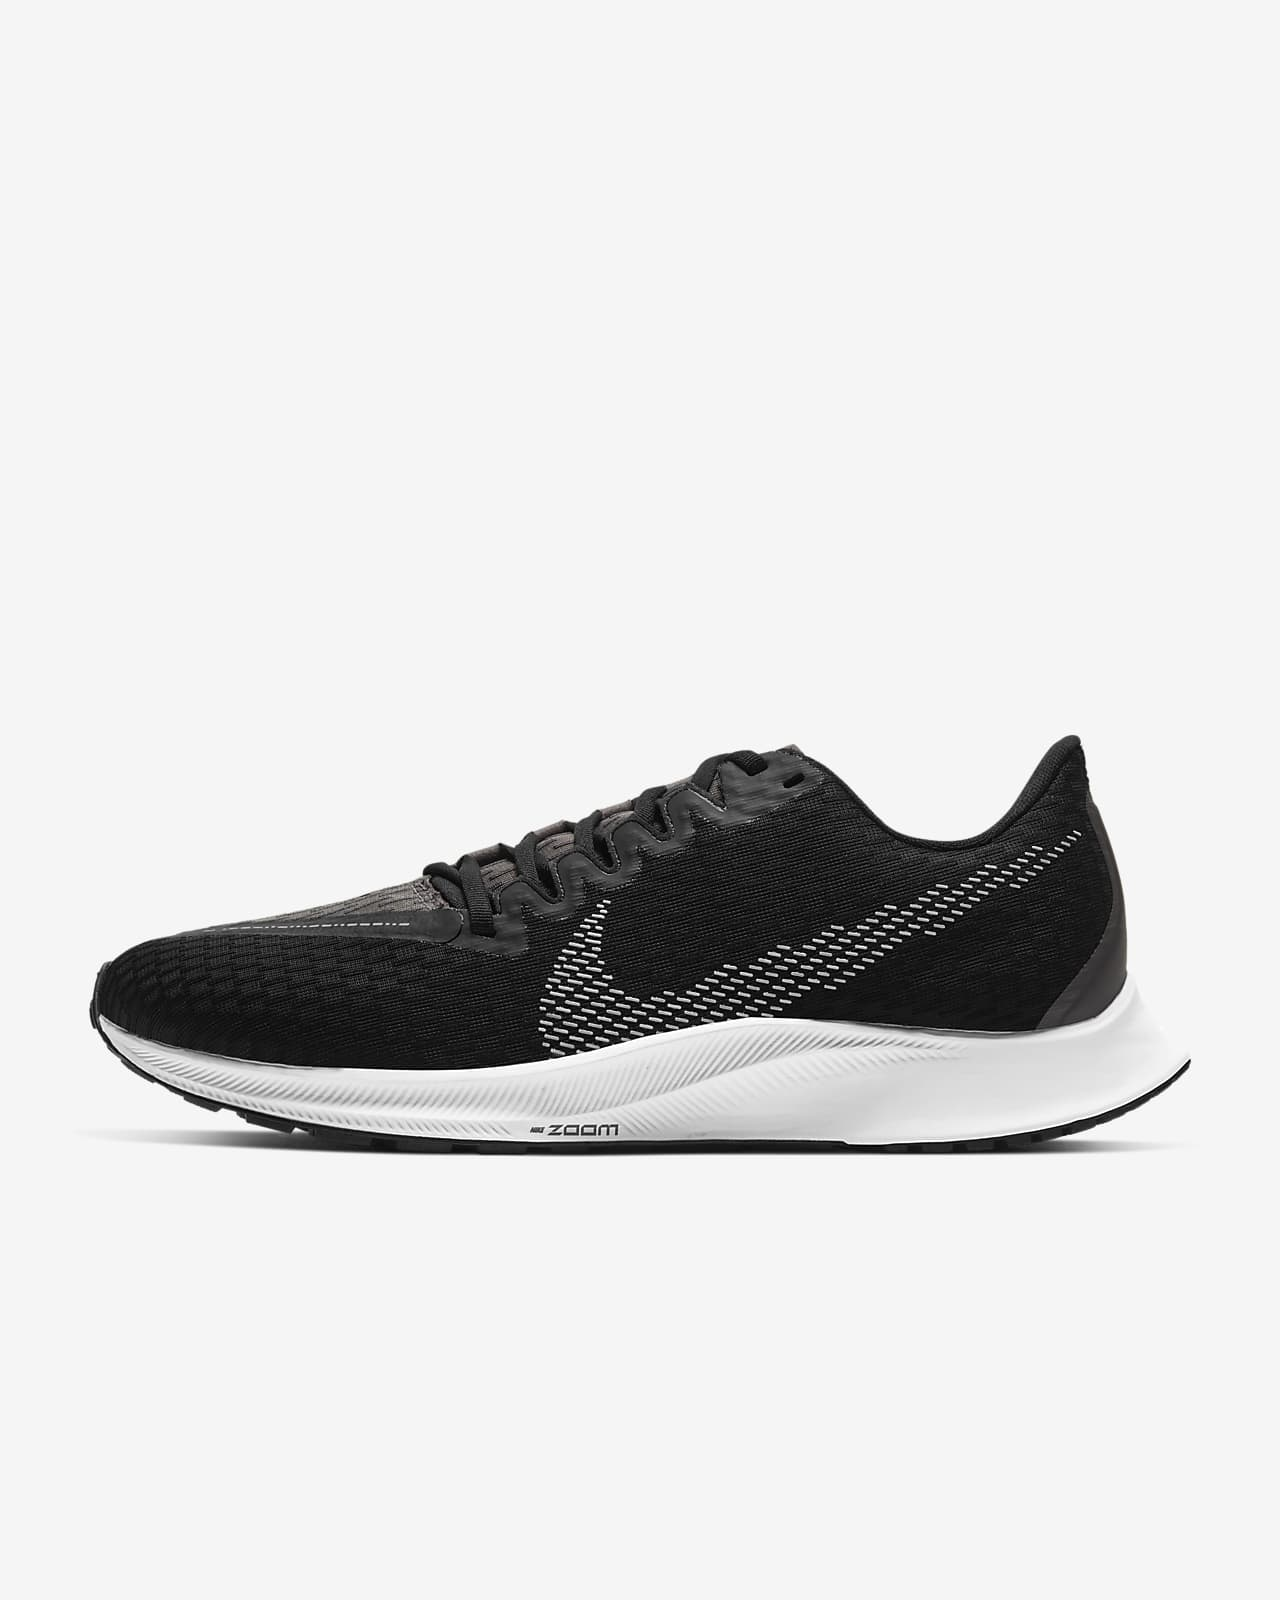 Nike Zoom Rival Fly 2 Women's Running Shoe